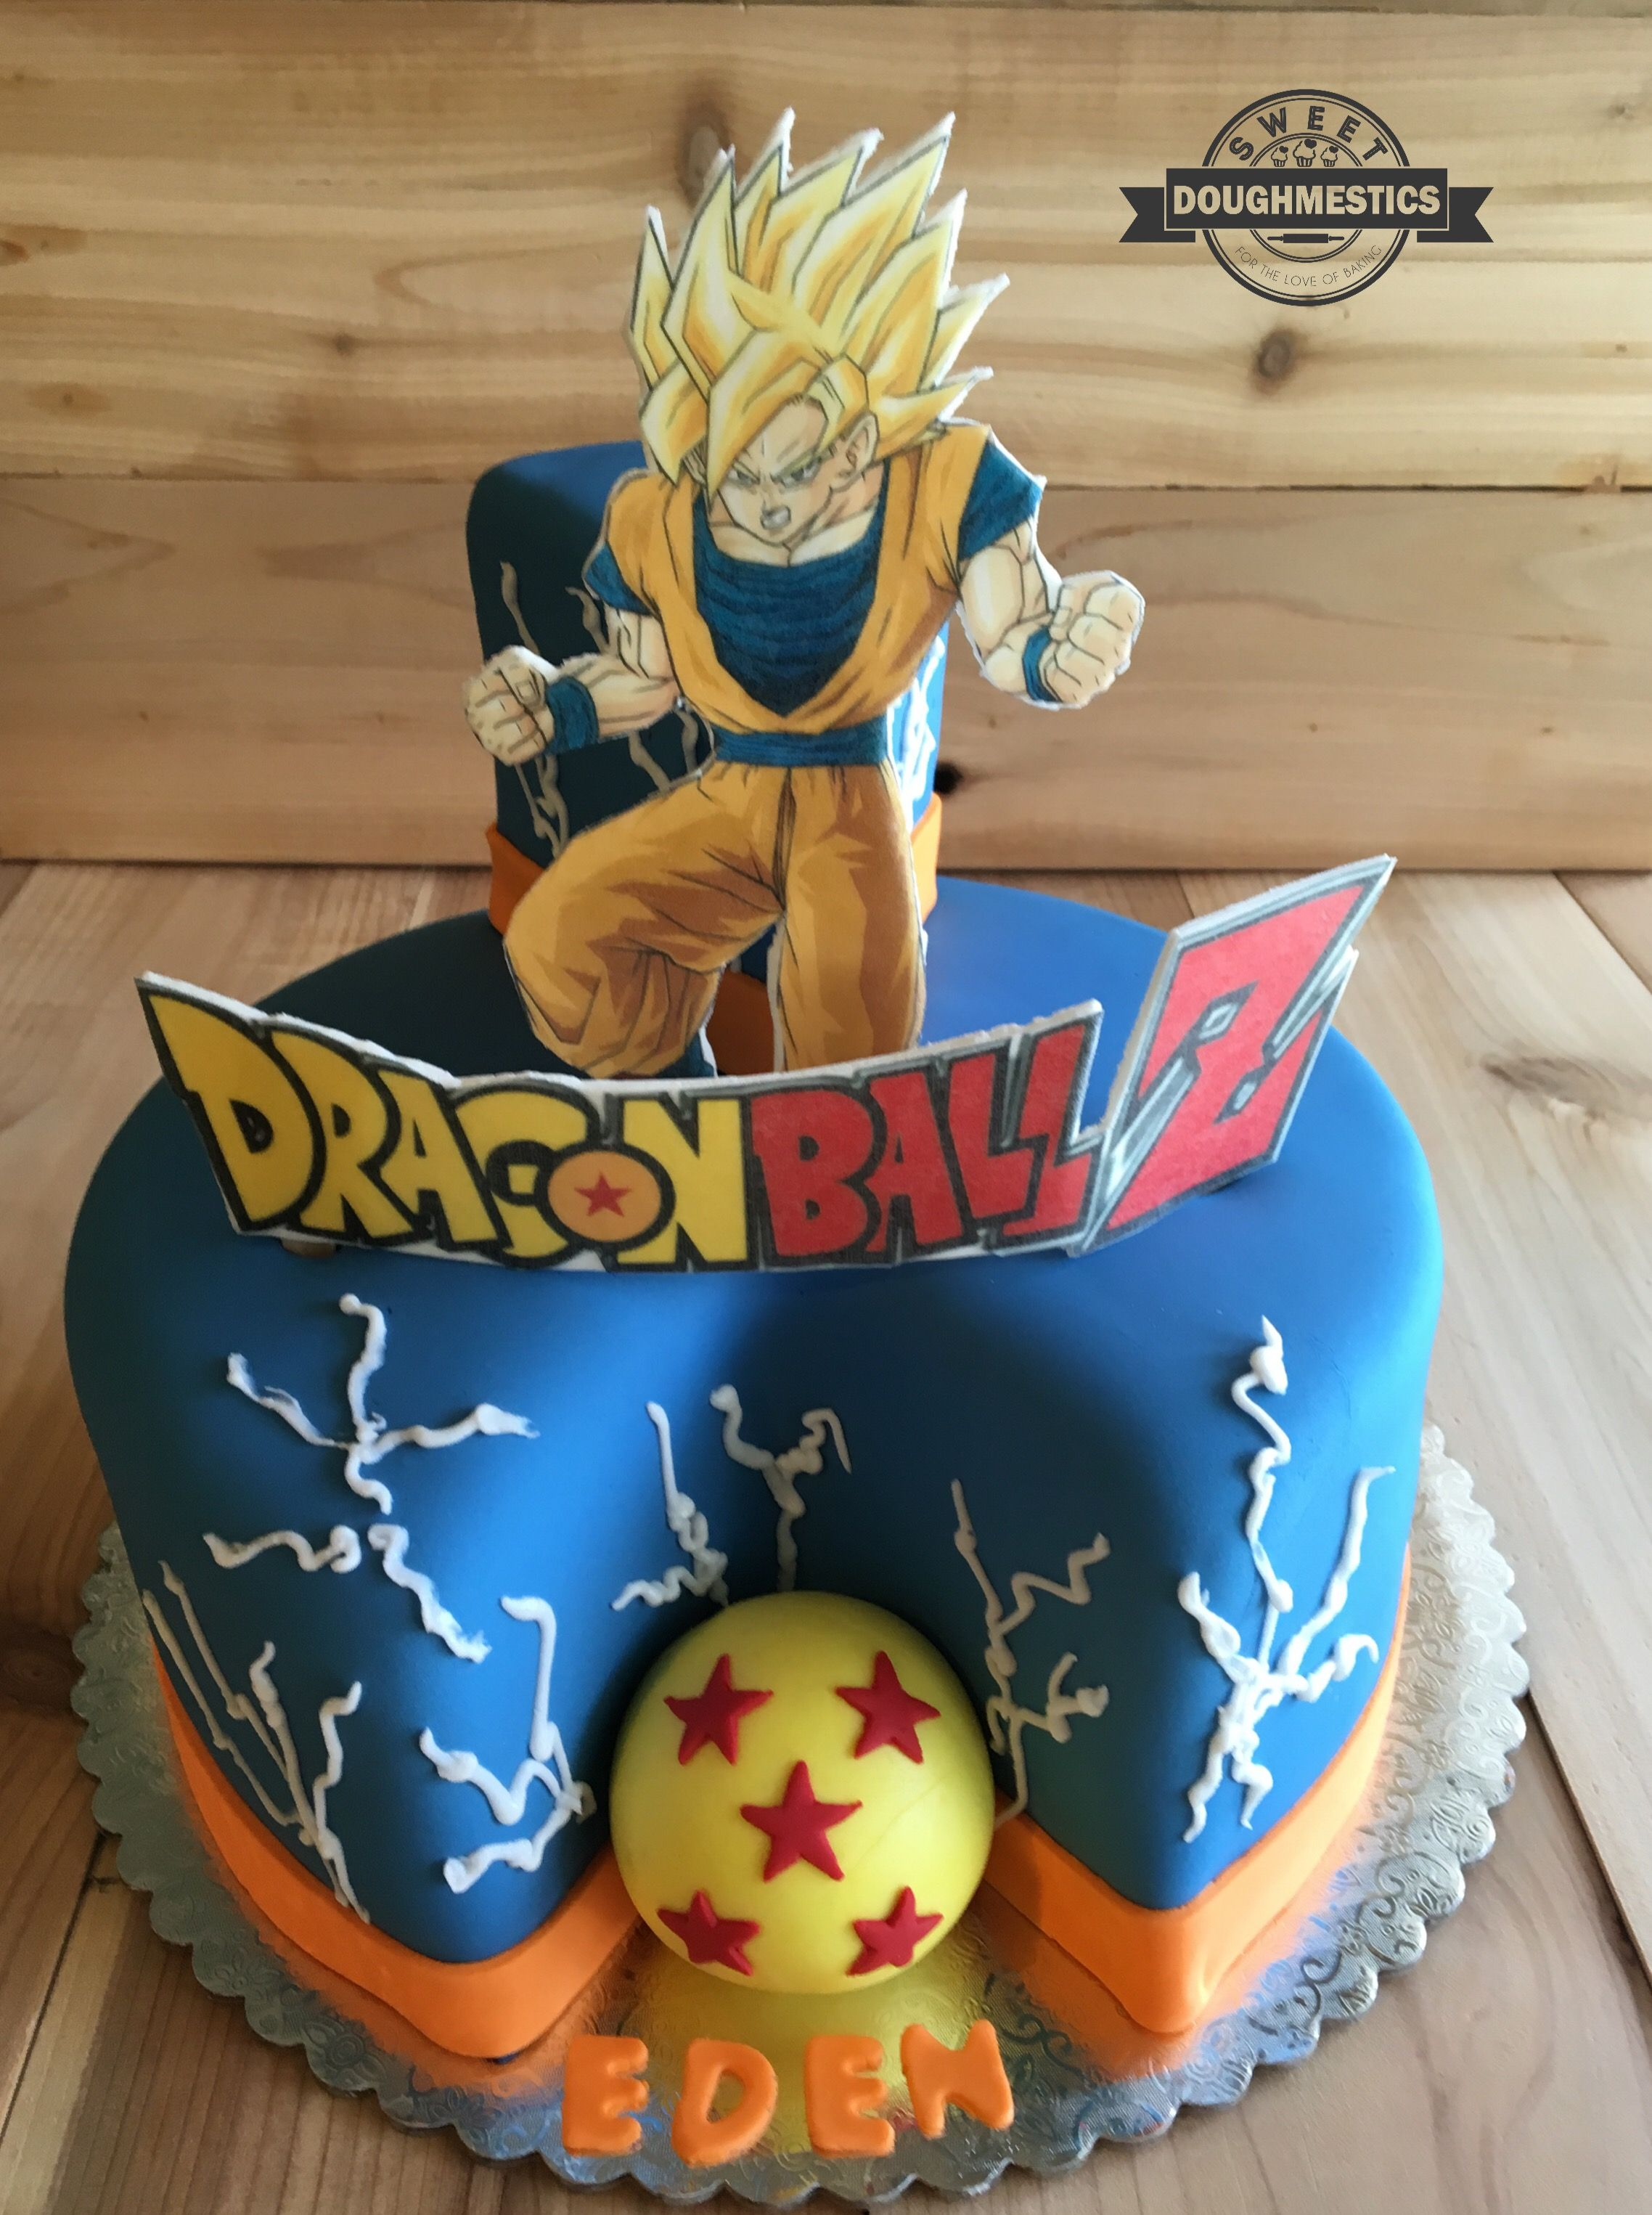 Dragon Ball Z Cake By Sweet Doughmestics